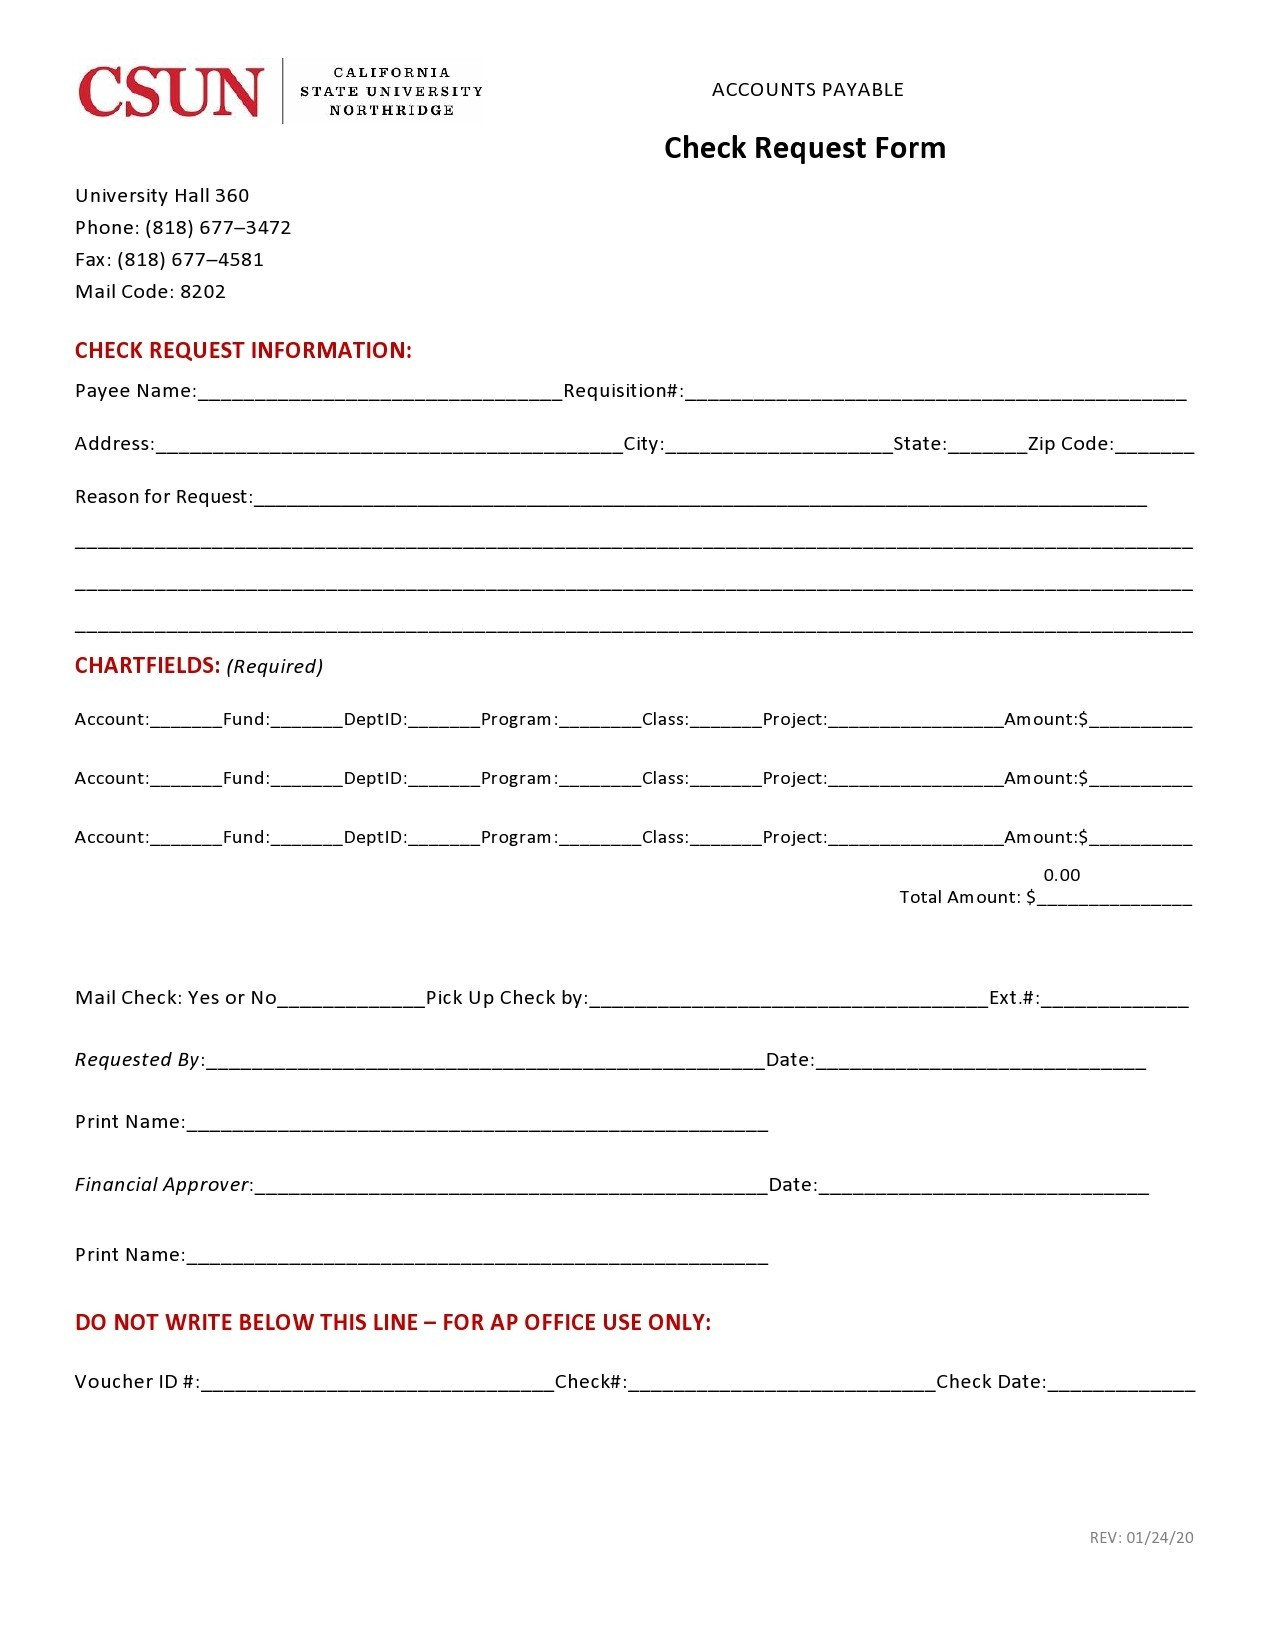 50 Free Check Request Forms Word Excel Pdf Á… Templatelab